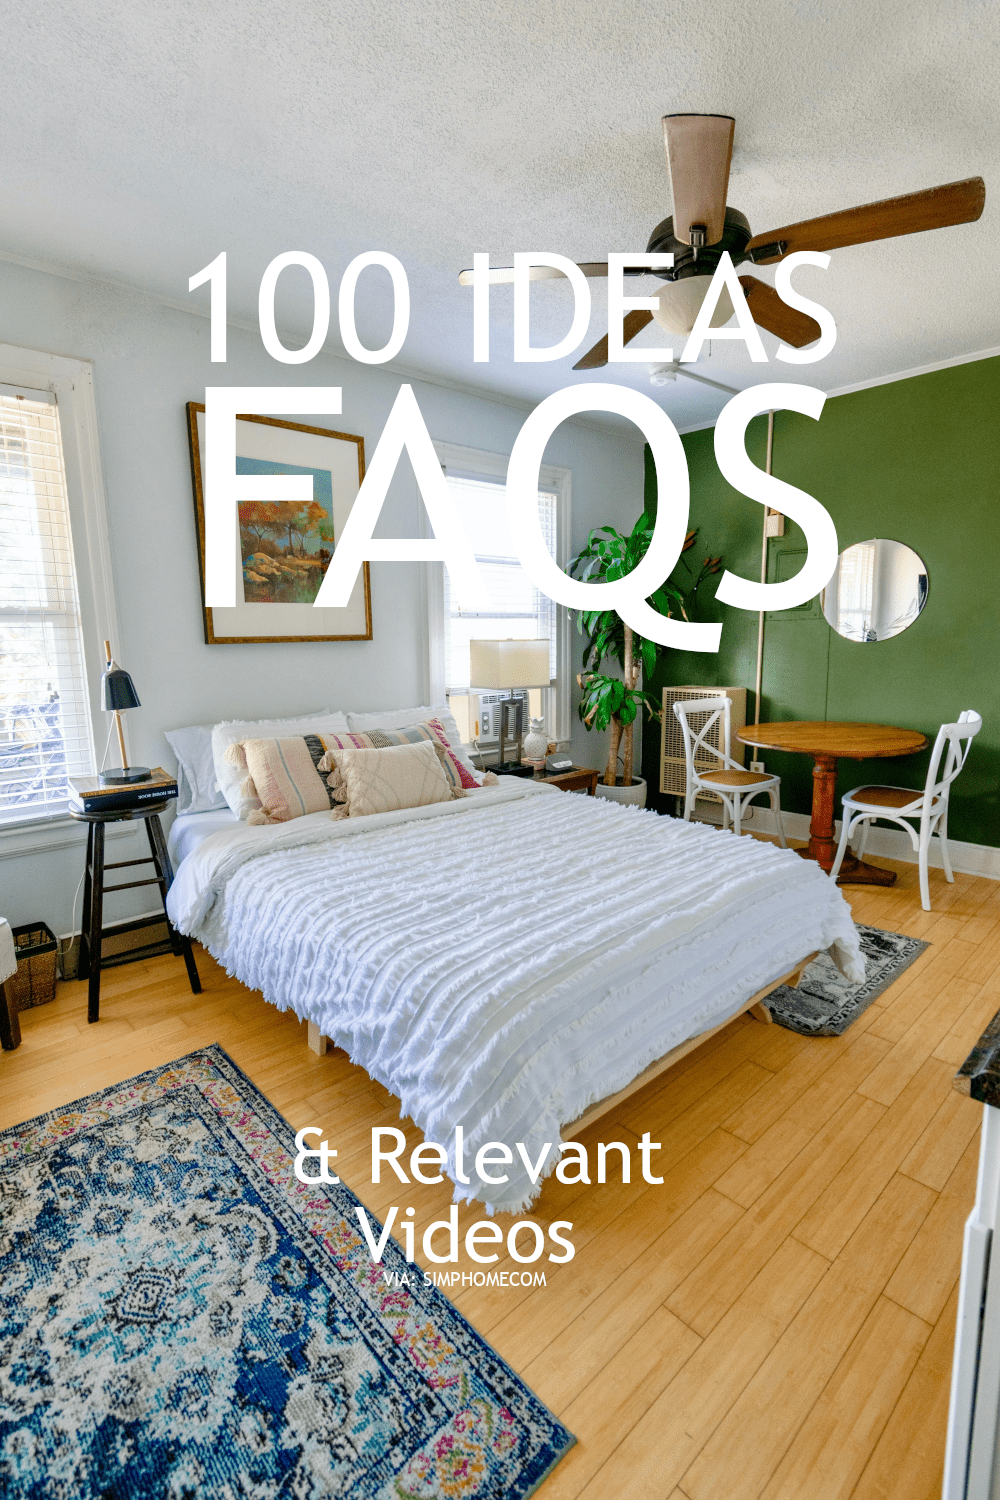 This is 100 Bedroom Ideas for small area include with FAQs and videos